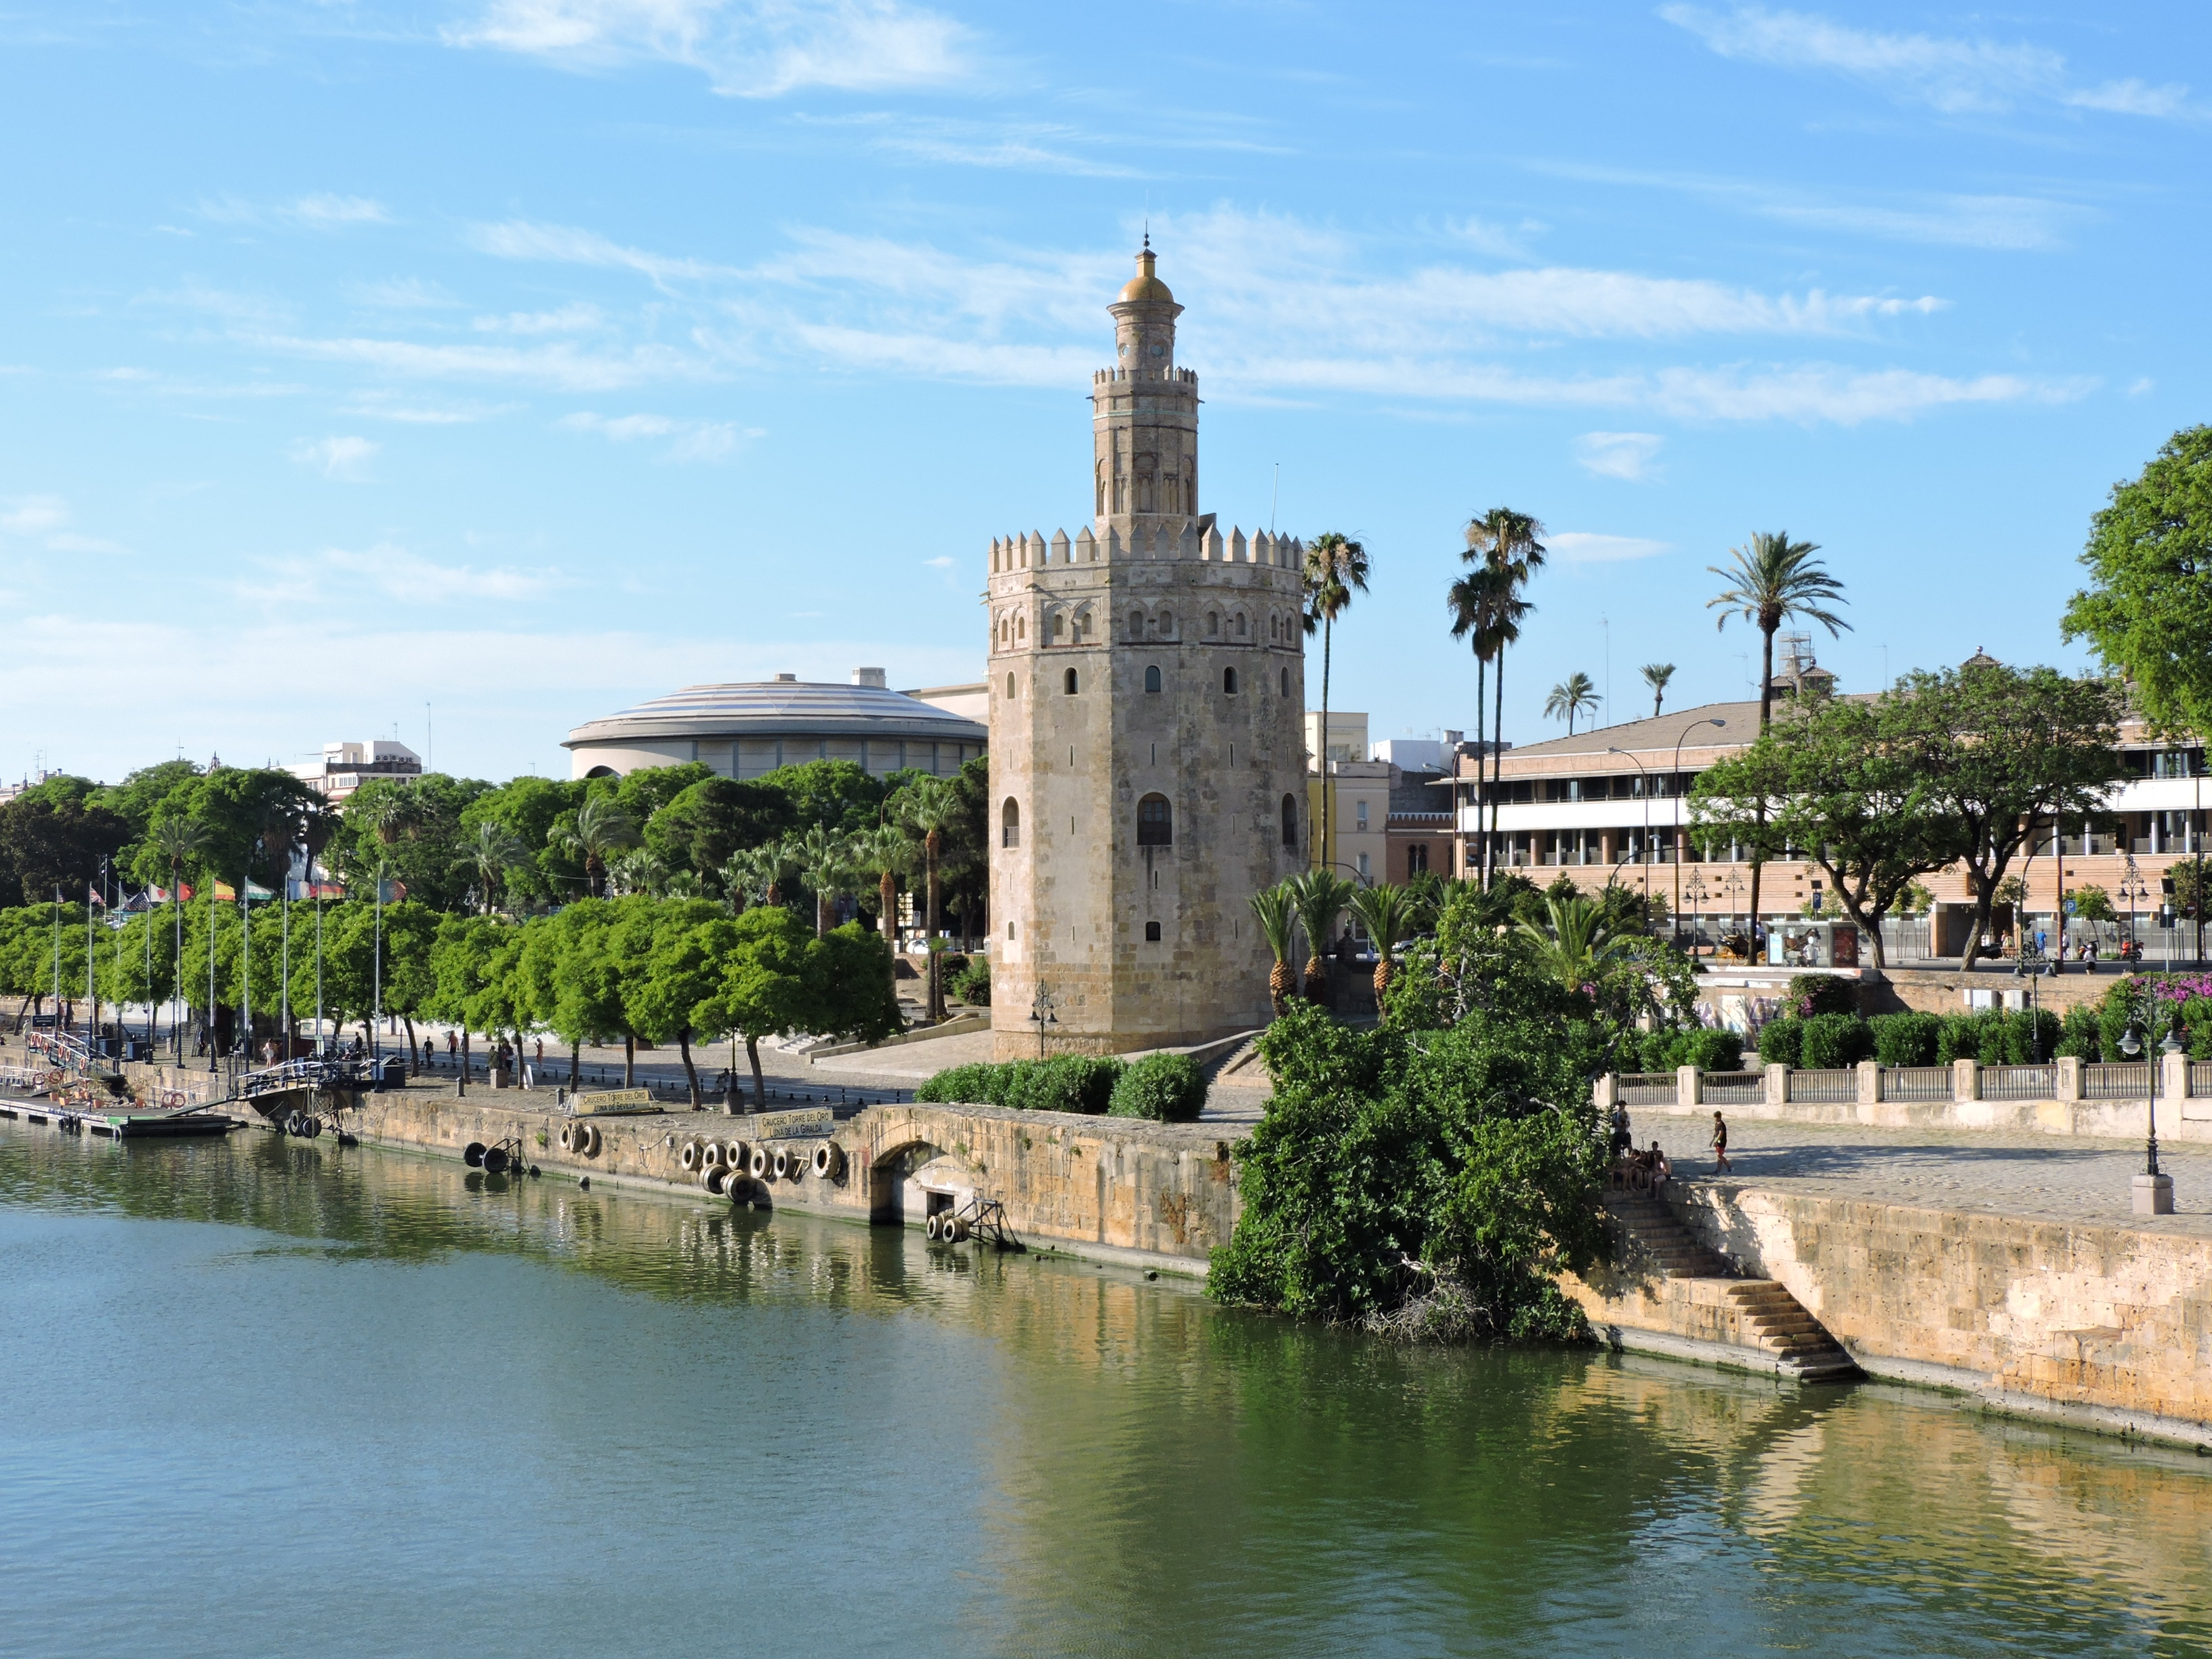 Postcards from Sevilla - Traveling with Aga